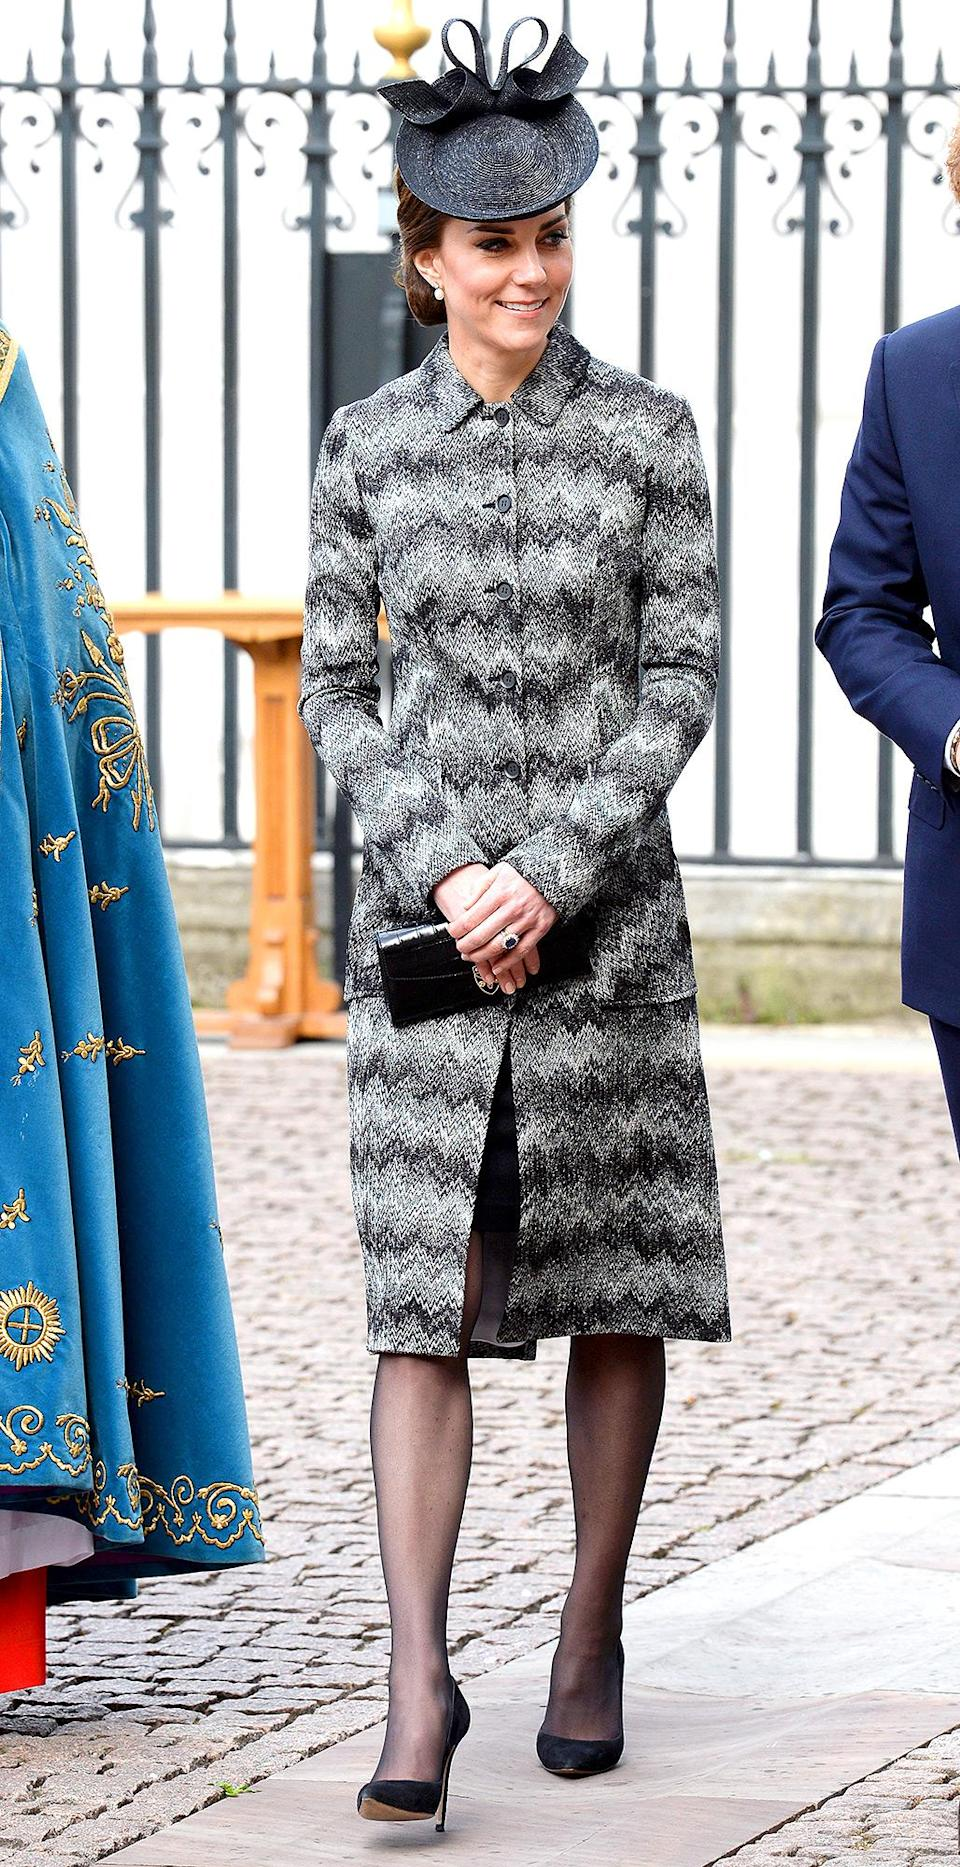 """<p><b>When:</b> April 5, 2017 <b>Where:</b> A Service of Hope for victims of the Westminster attacks at Westminster Abbey <b>Wearing:</b> A Missoni Coat <b>Get the Look: </b>Cole Haan Asymmetrical Walker Coat, $170; <a href=""""https://click.linksynergy.com/fs-bin/click?id=93xLBvPhAeE&subid=0&offerid=486467.1&type=10&tmpid=1513&RD_PARM1=https%3A%2F%2Fwww.macys.com%2Fshop%2Fproduct%2Fcole-haan-signature-asymmetrical-walker-coat%3FID%3D4831171%2526CategoryID%3D269%2526swatchColor%3DBlack%252Fwhite&u1=POROYALSKateSpringStyleMM"""" rel=""""nofollow noopener"""" target=""""_blank"""" data-ylk=""""slk:macys.com"""" class=""""link rapid-noclick-resp"""">macys.com </a>Monki Check Print Tailored Coat, $103; <a href=""""https://click.linksynergy.com/fs-bin/click?id=93xLBvPhAeE&subid=0&offerid=460292.1&type=10&tmpid=20904&RD_PARM1=http%3A%2F%2Fus.asos.com%2Fmonki%2Fmonki-check-print-tailored-coat%2Fprd%2F8973427%3Fclr%3Dgray%2526SearchQuery%3Dgrey%2520coat%2526gridcolumn%3D2%2526gridrow%3D4%2526gridsize%3D4%2526pge%3D1%2526pgesize%3D72%2526totalstyles%3D82&u1=POROYALSKateSpringStyleMM"""" rel=""""nofollow noopener"""" target=""""_blank"""" data-ylk=""""slk:asos.com"""" class=""""link rapid-noclick-resp"""">asos.com</a></p>"""